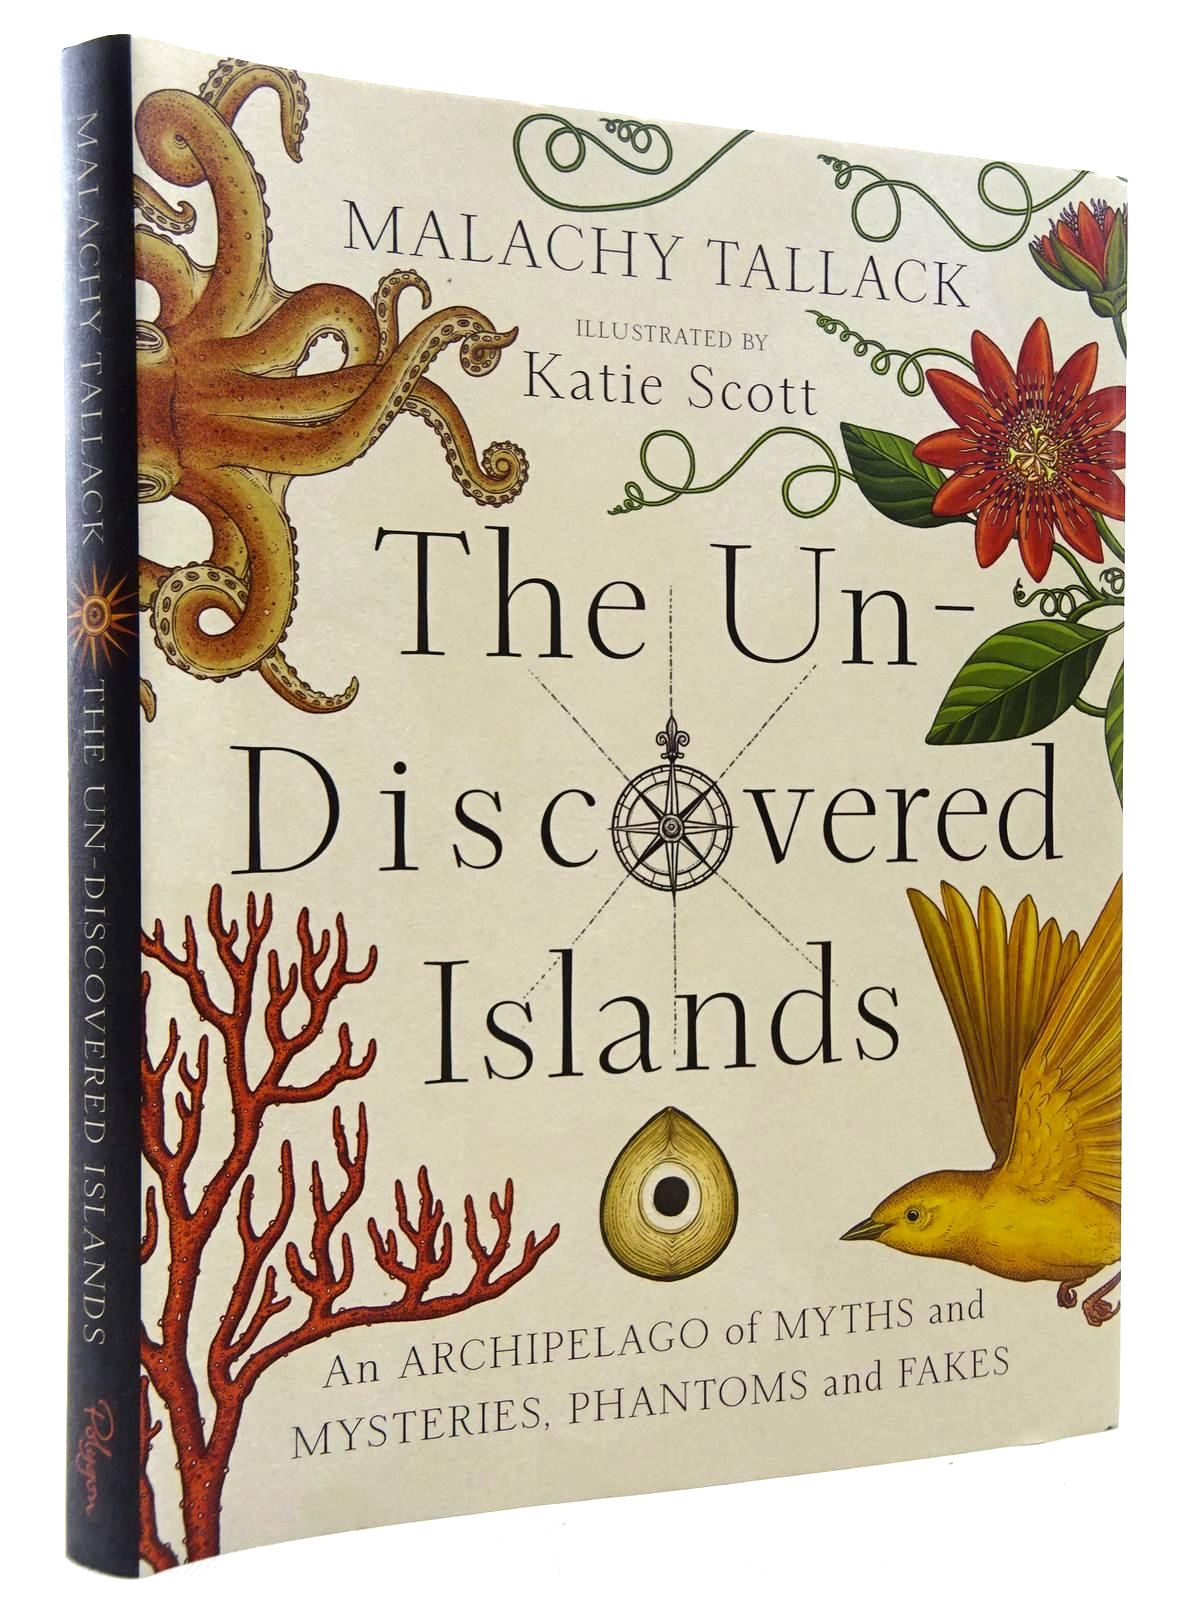 Photo of THE UN-DISCOVERED ISLANDS: AN ARCHIPELAGO OF MYTHS AND MYSTERIES, PHANTOMS AND FAKES written by Tallack, Malachy illustrated by Scott, Katie published by Polygon (STOCK CODE: 1815899)  for sale by Stella & Rose's Books